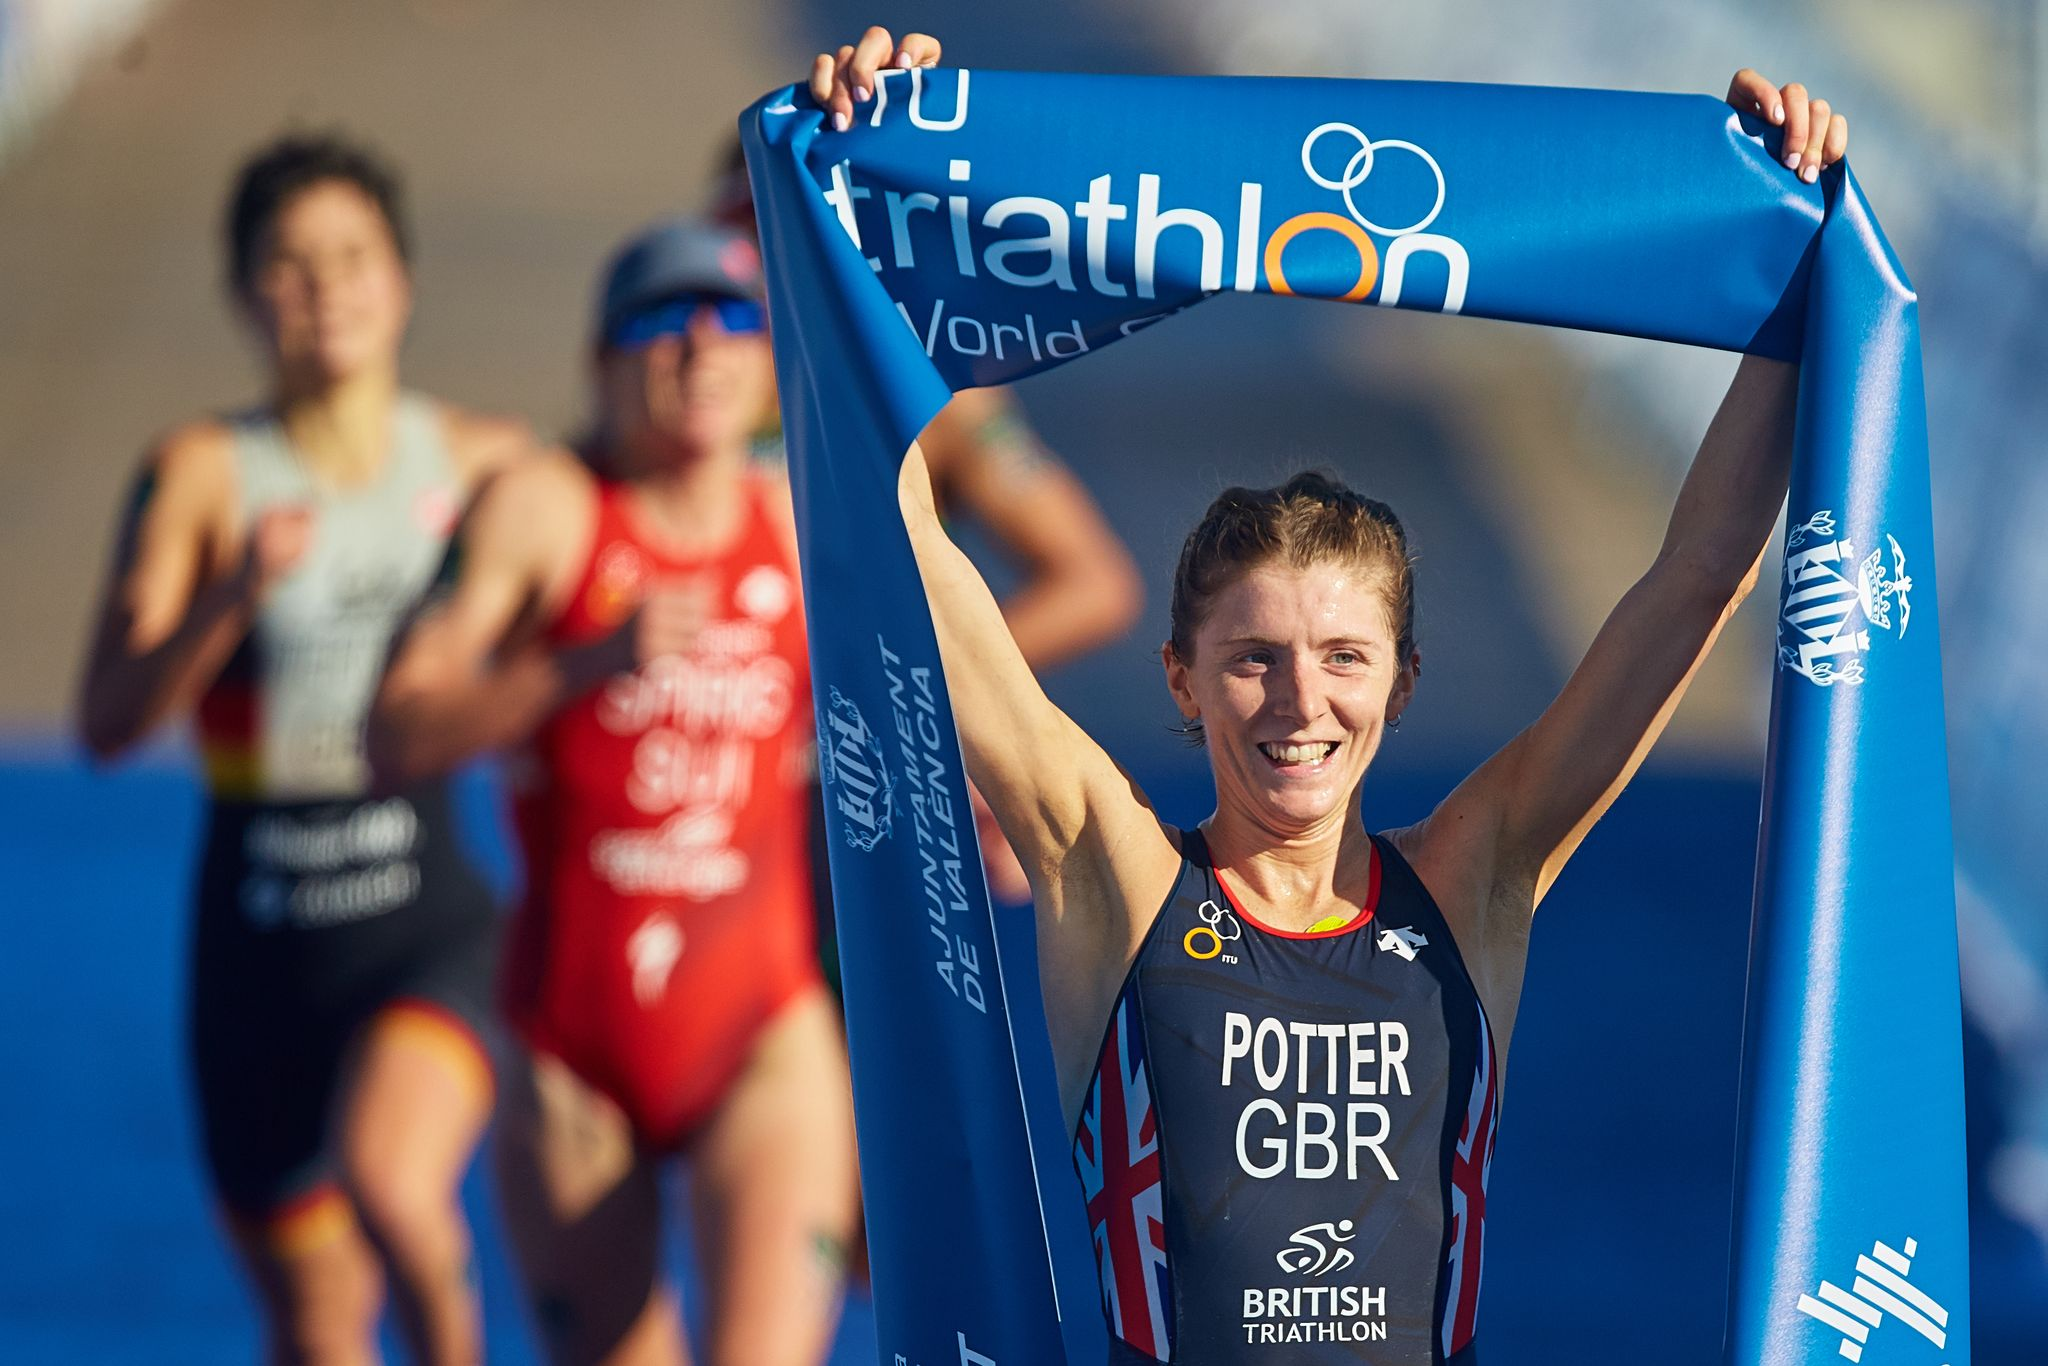 Beth Potter on training, social media and that incredible 5K time